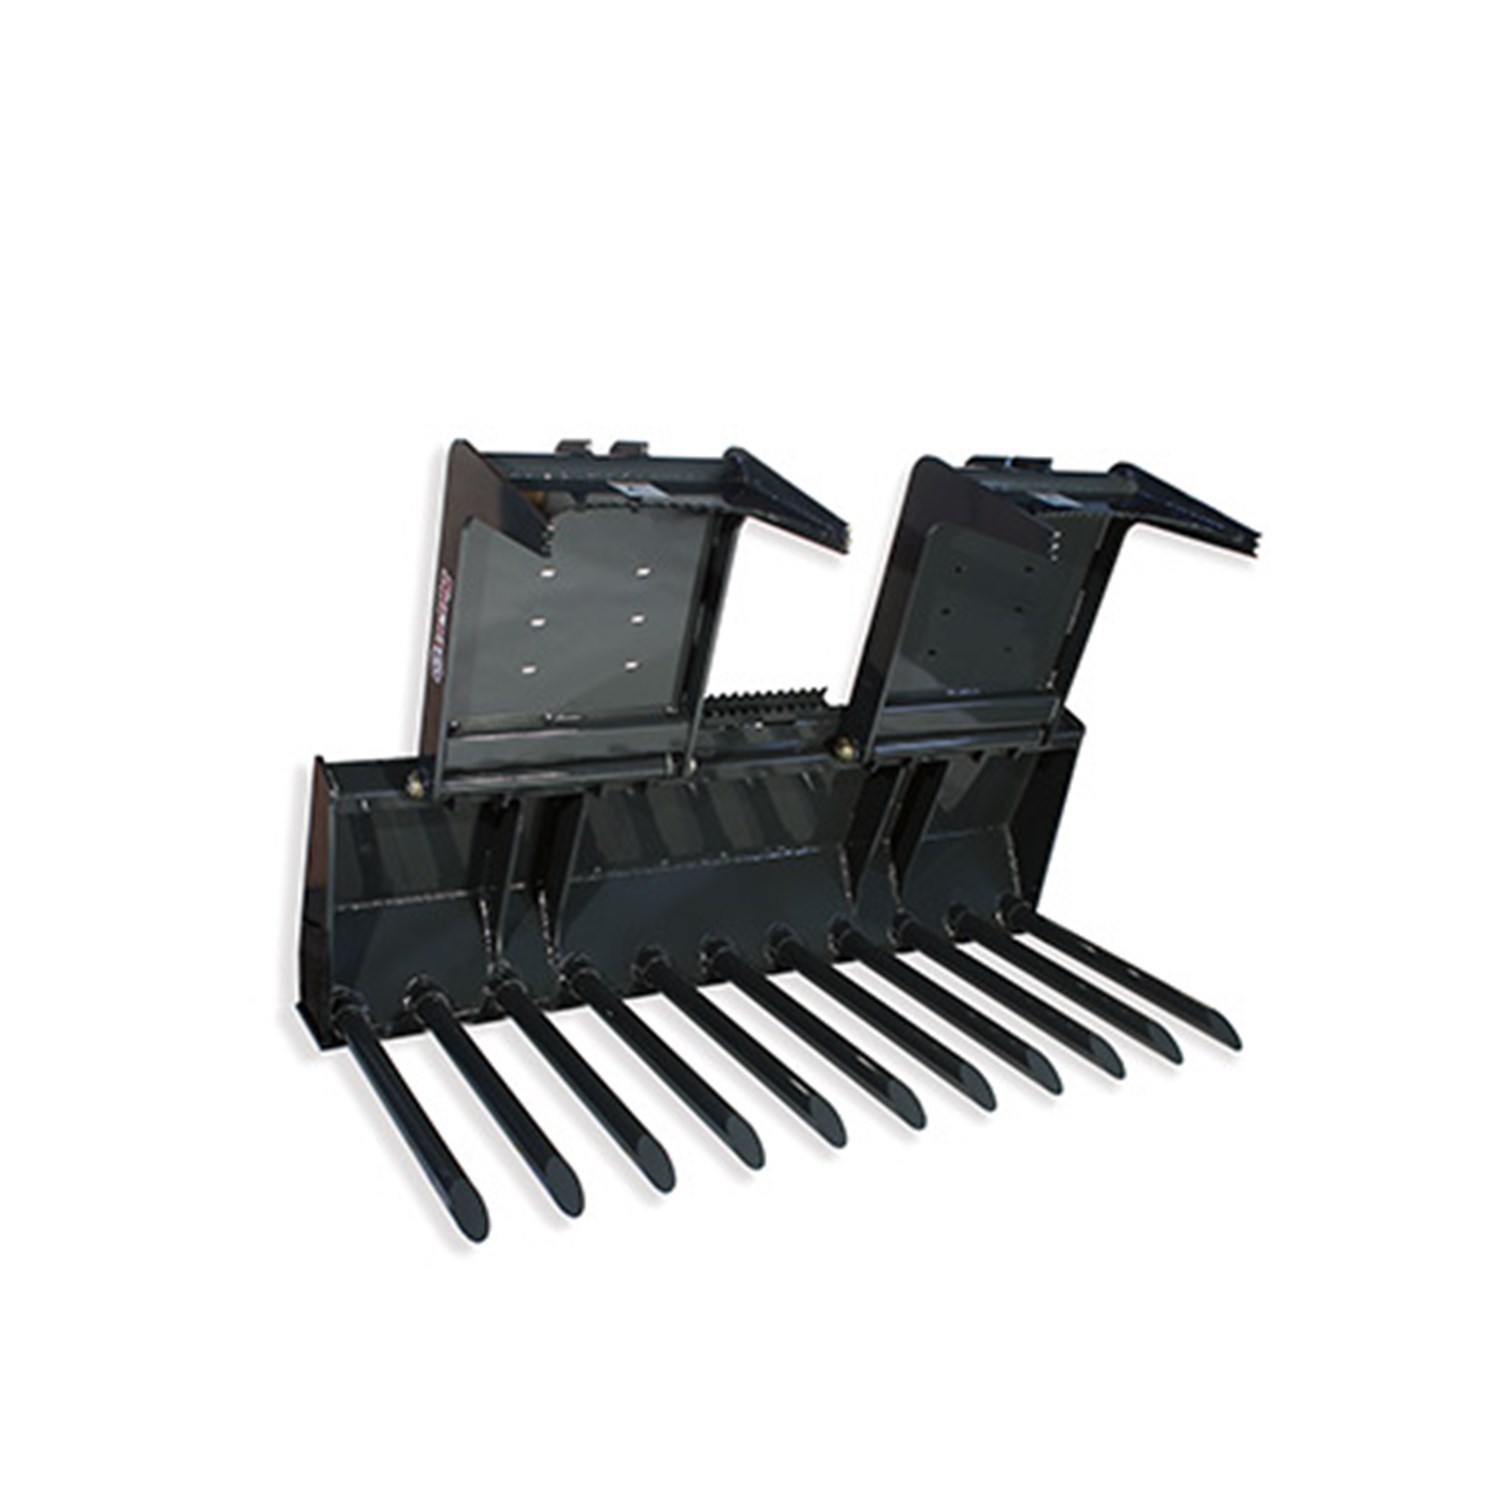 VIRNIG ITG INDUSTRIAL TINE FORK GRAPPLE SERIES